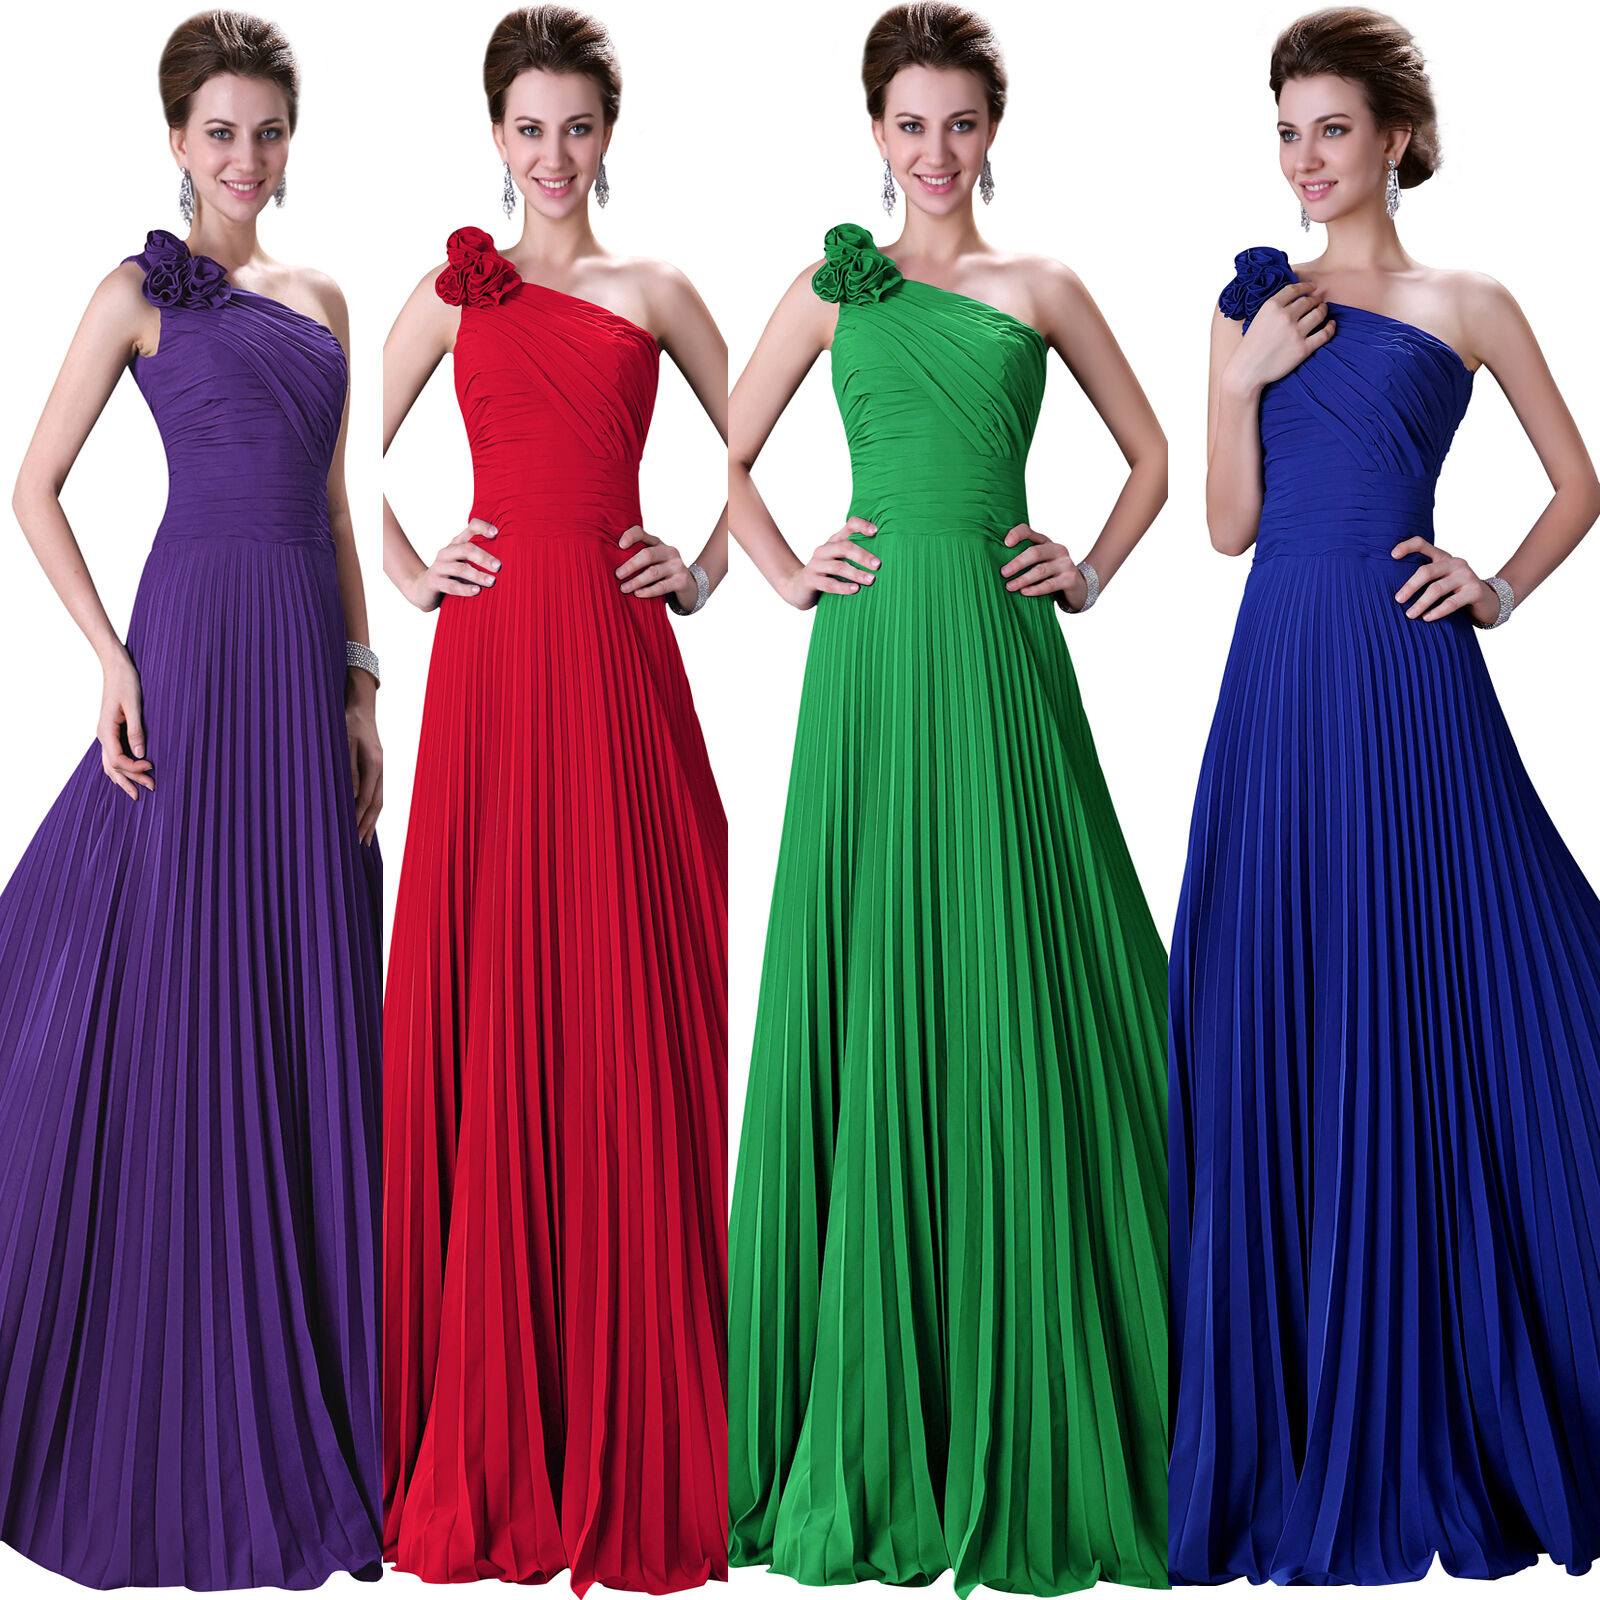 IN-STOCK-Sexy-Long-Chiffon-Evening-Formal-Party-Ball-Gown-Prom-Bridesmaid-Dress